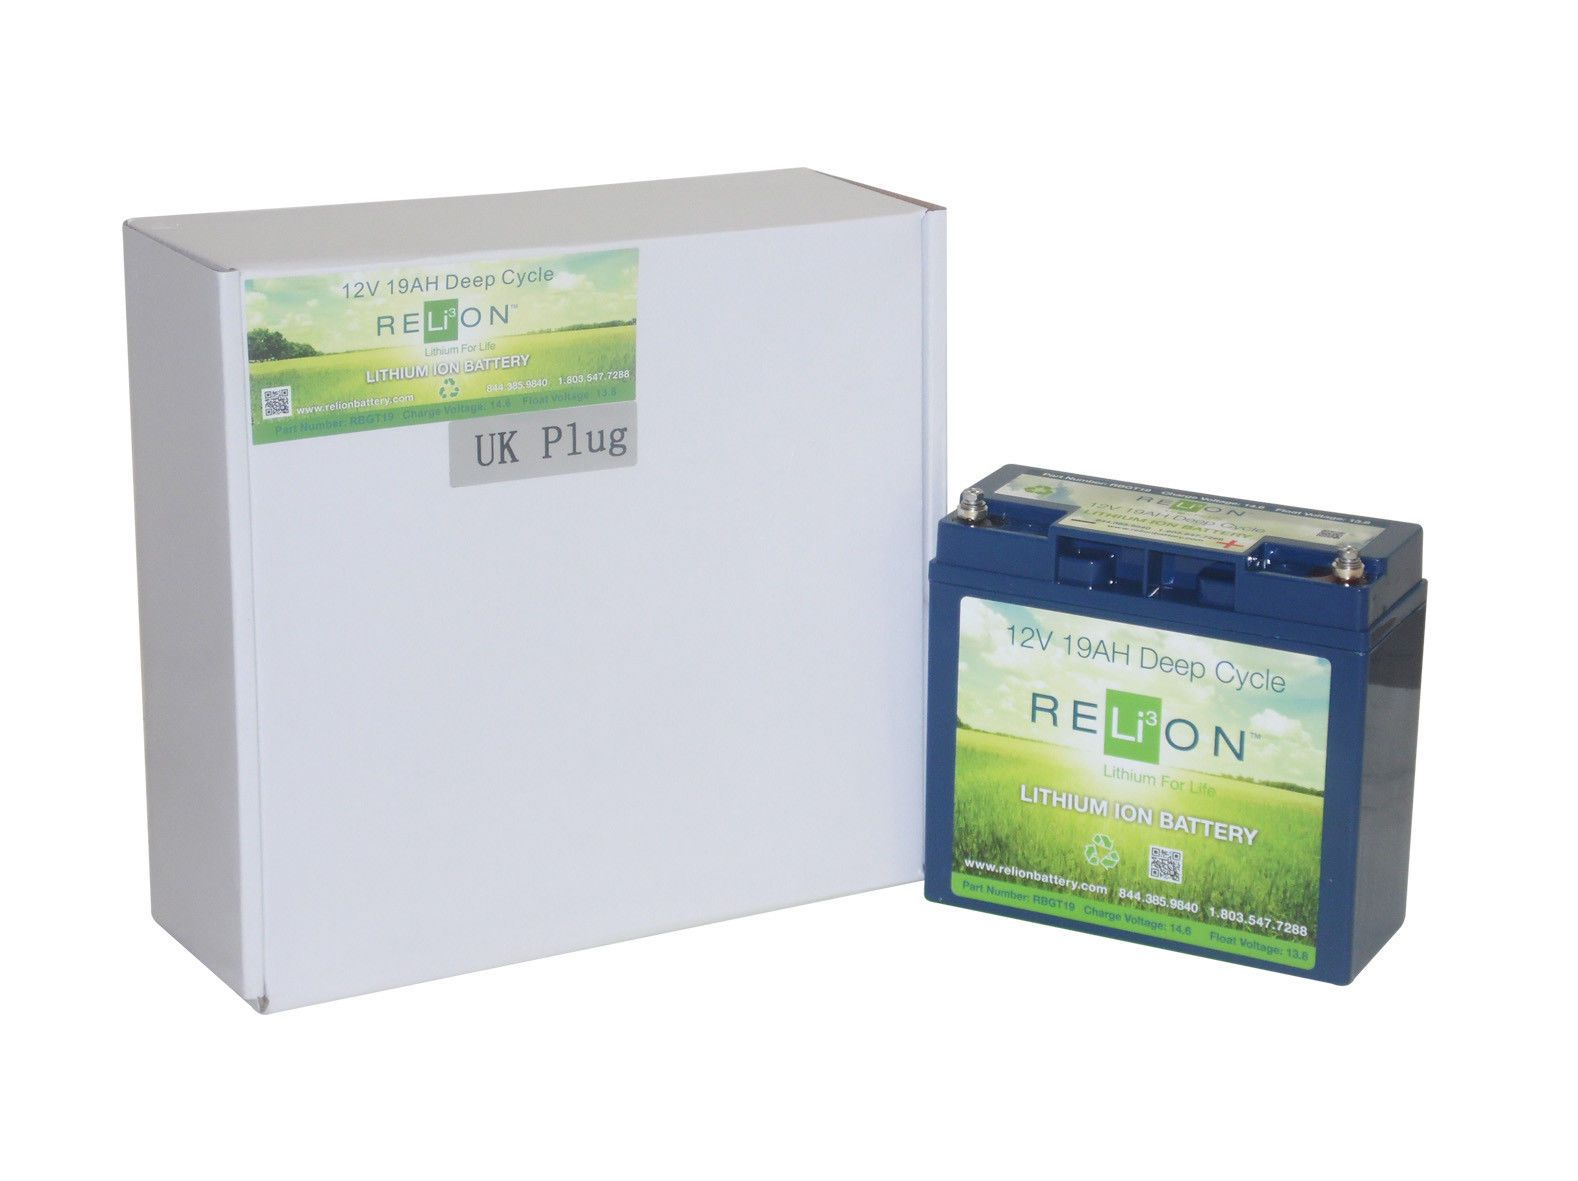 RELiON 19Ah LITHIUM GOLF BATTERY, Anderson Terminal - POWAKADDY 6 YEAR  WARRANTY